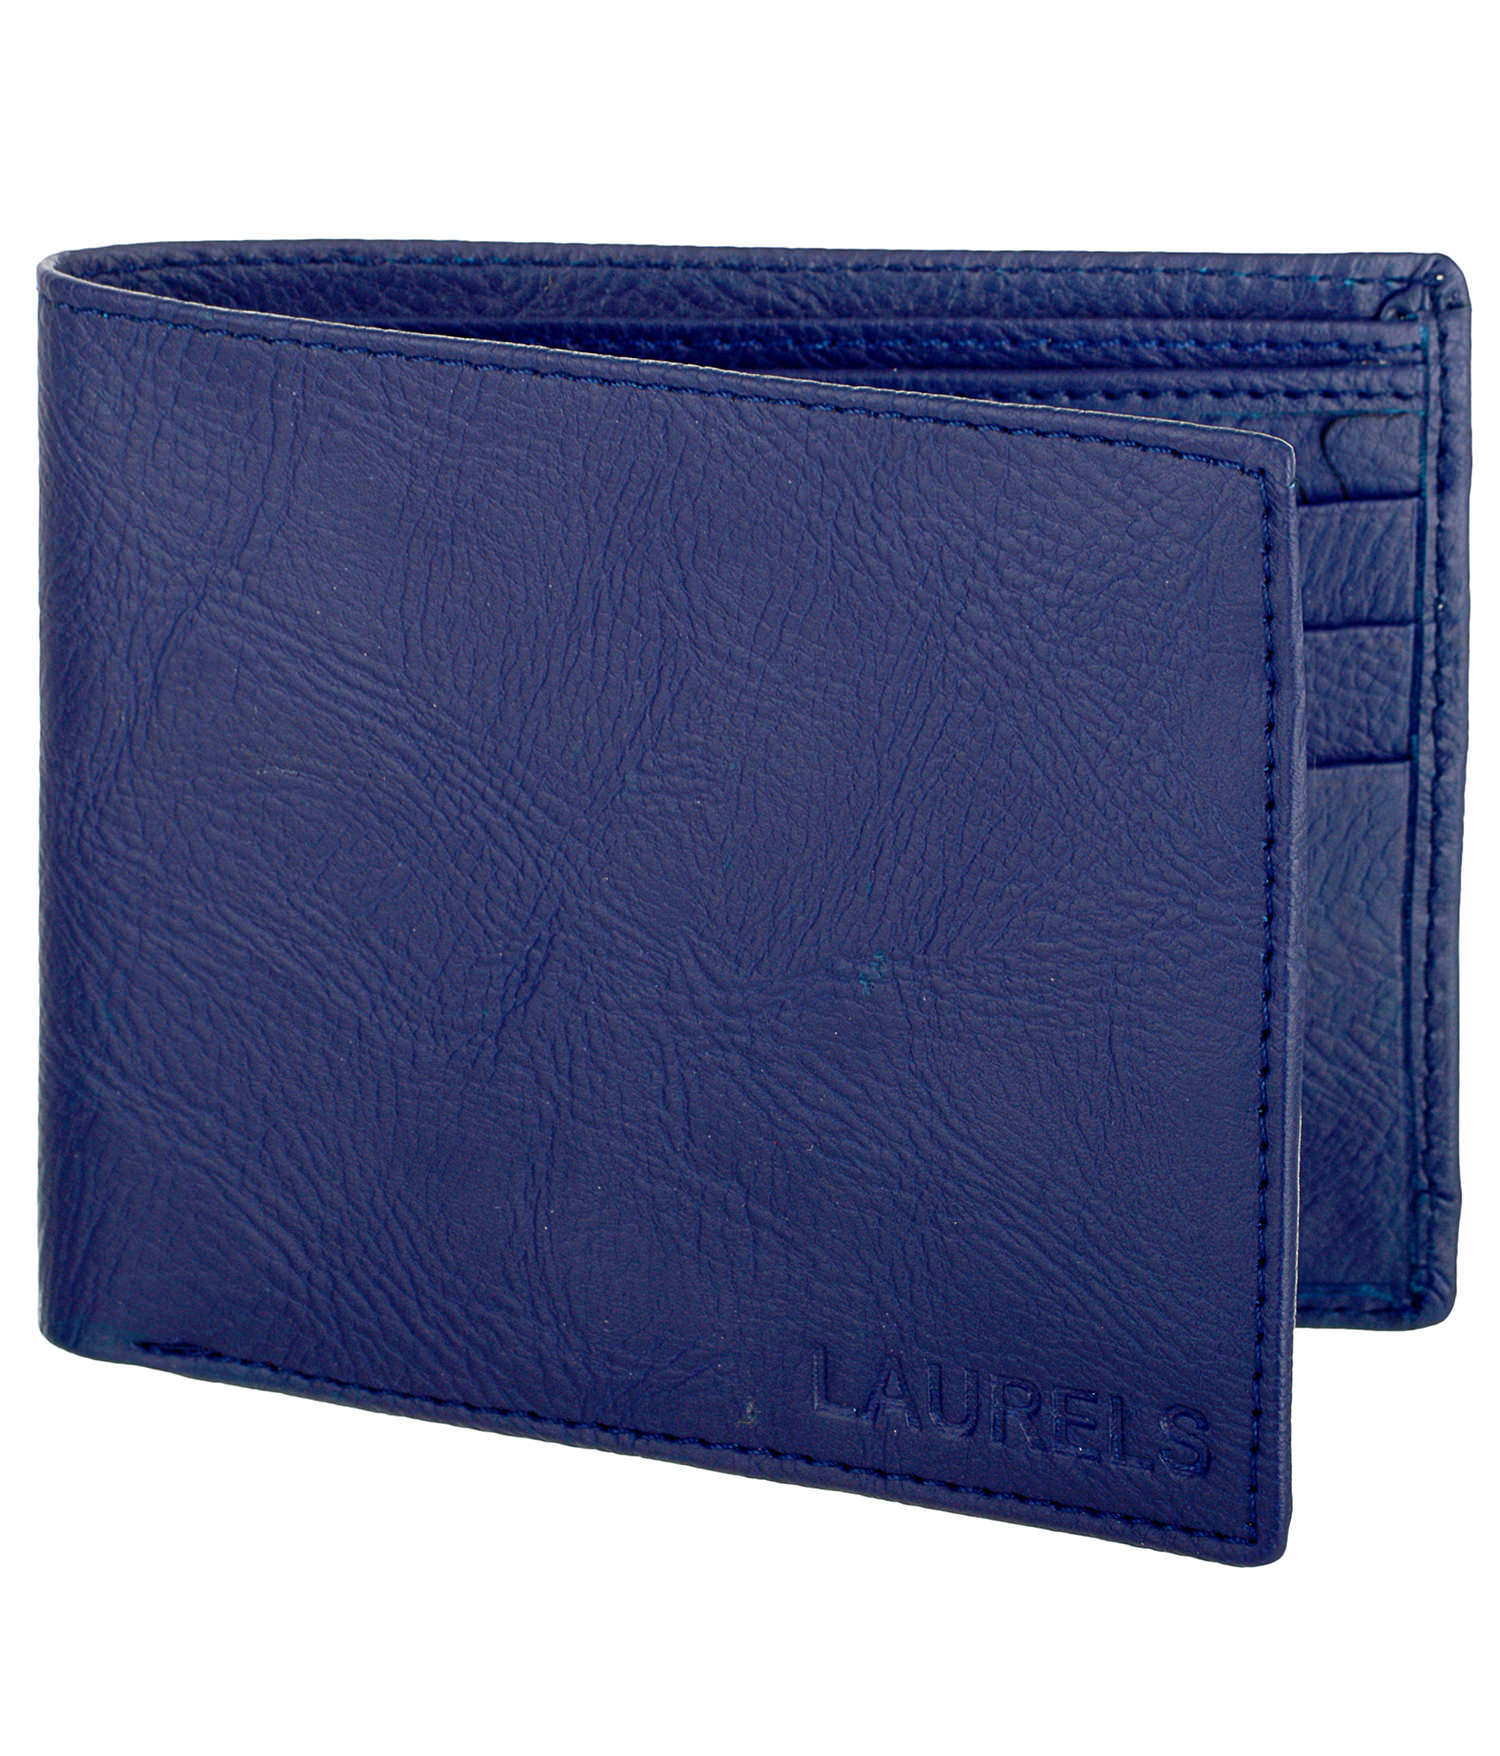 Laurels BLUE PU Wallets For Men